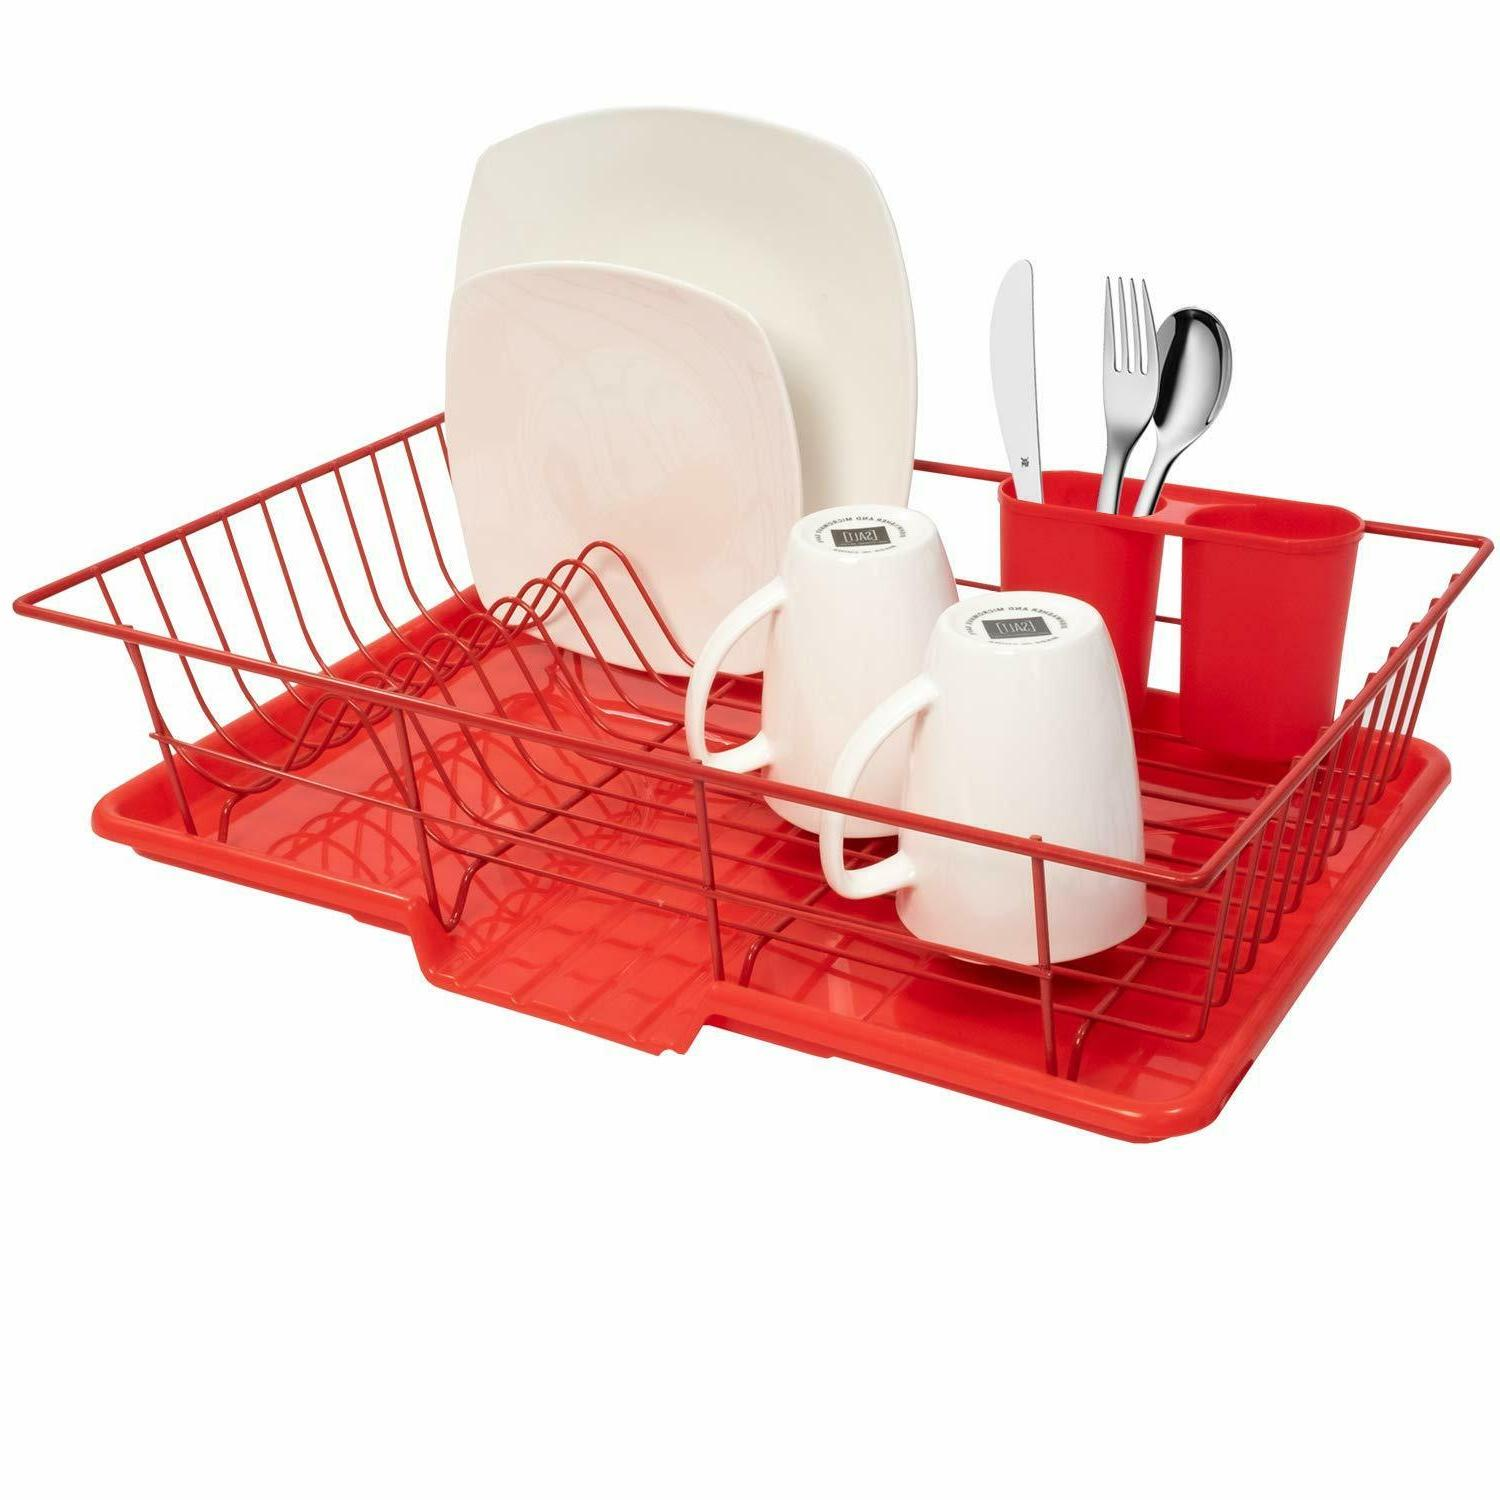 red dish drying rack drainer dishes utensils